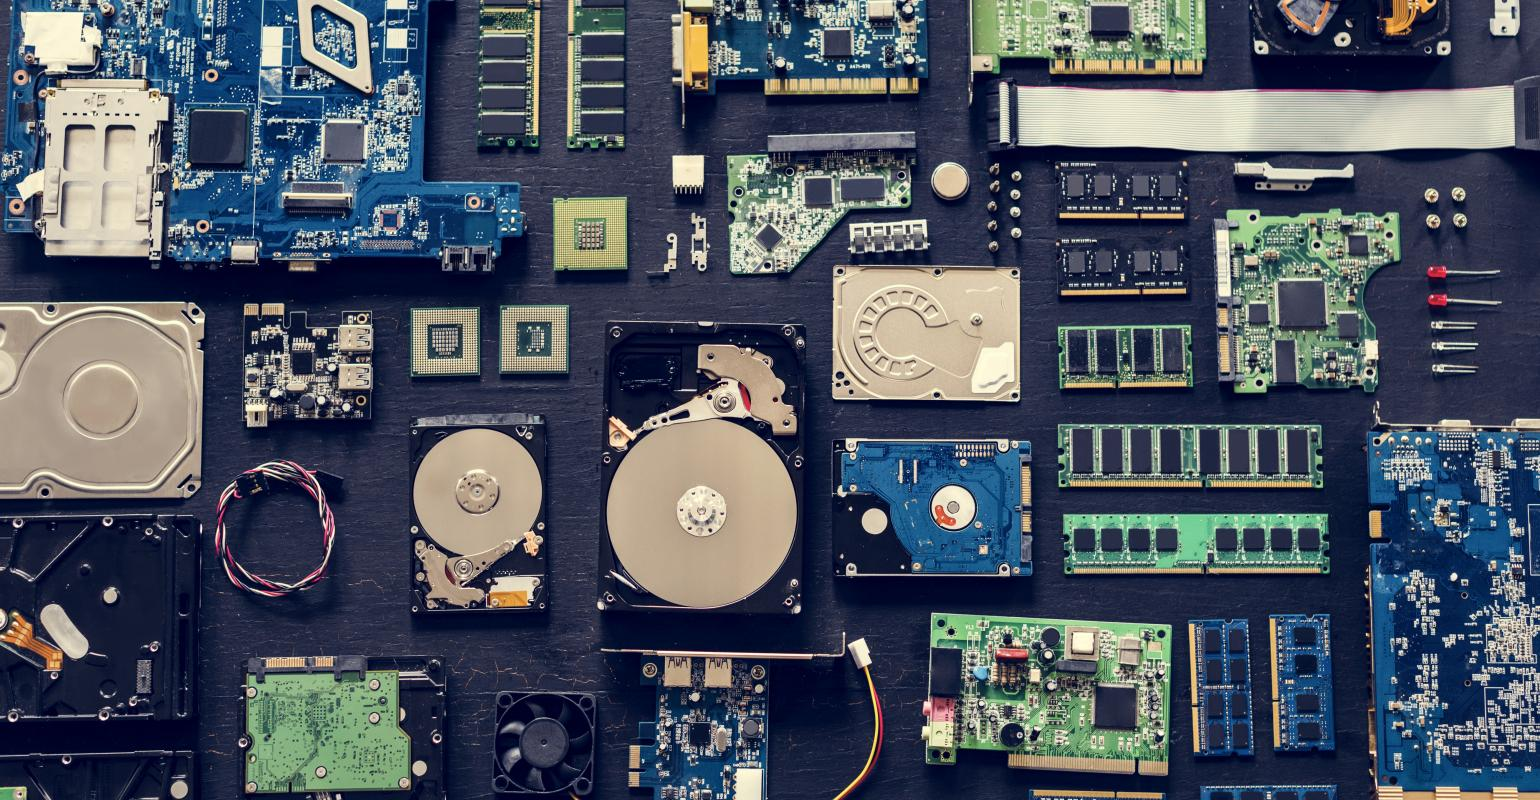 Consider New Criteria to Find the Best Hard Drive | IT Pro